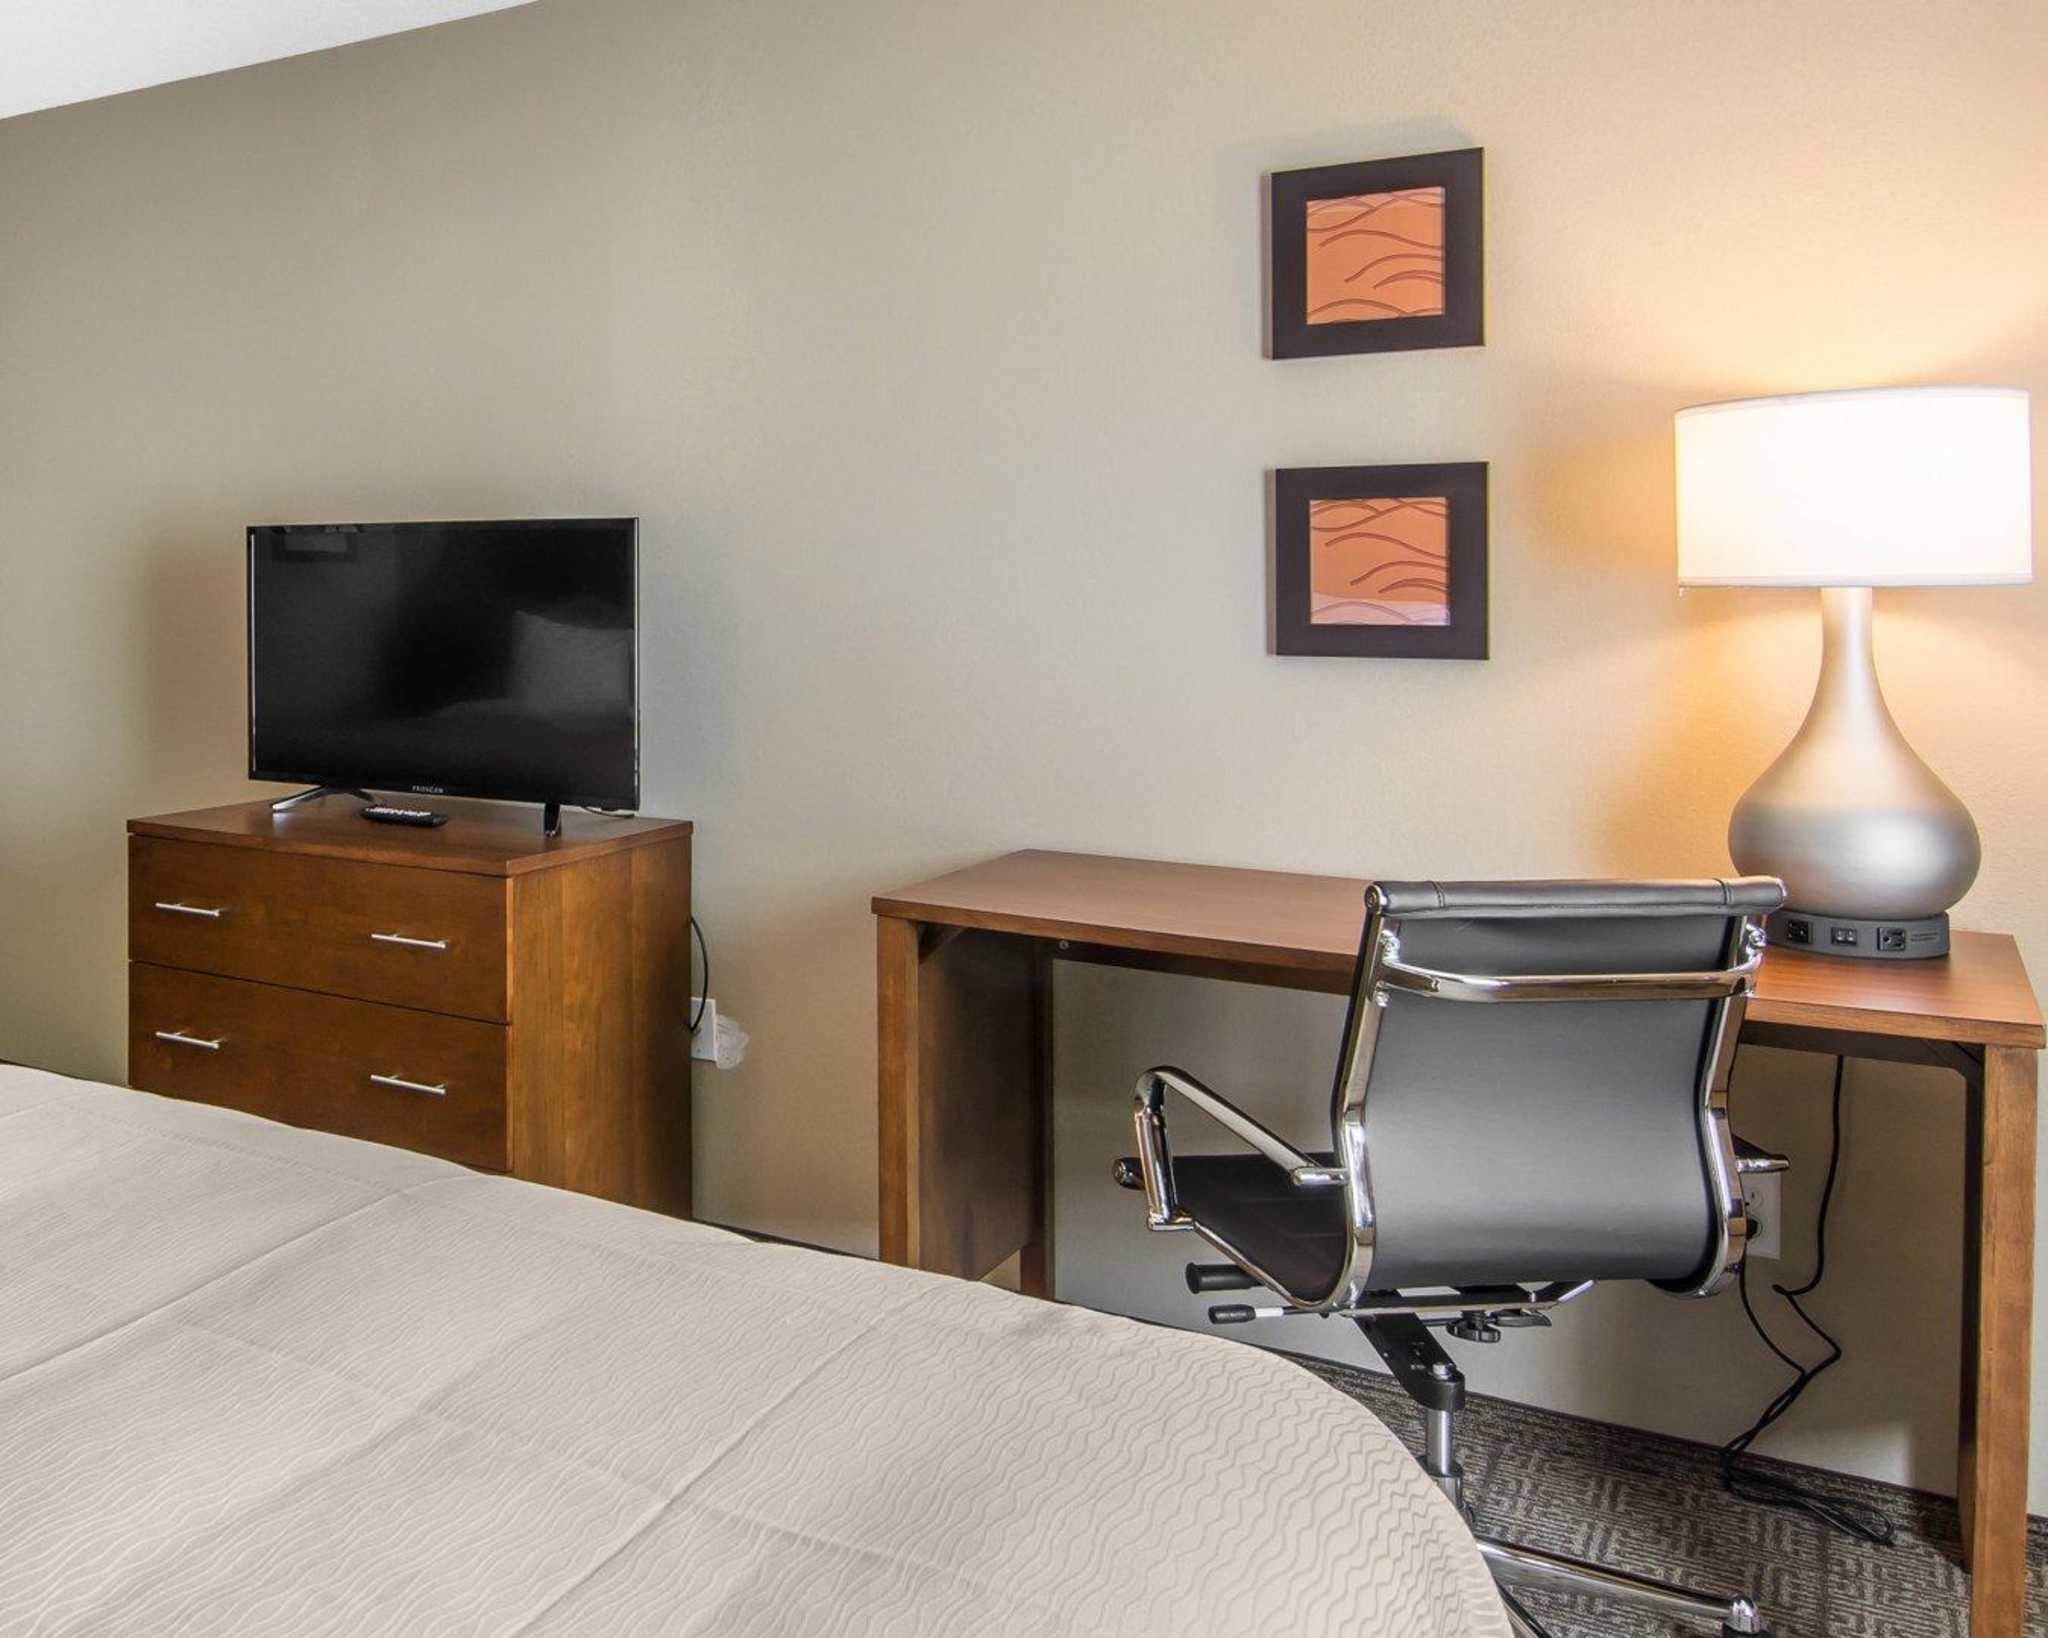 Comfort Inn South Chesterfield - Colonial Heights image 12